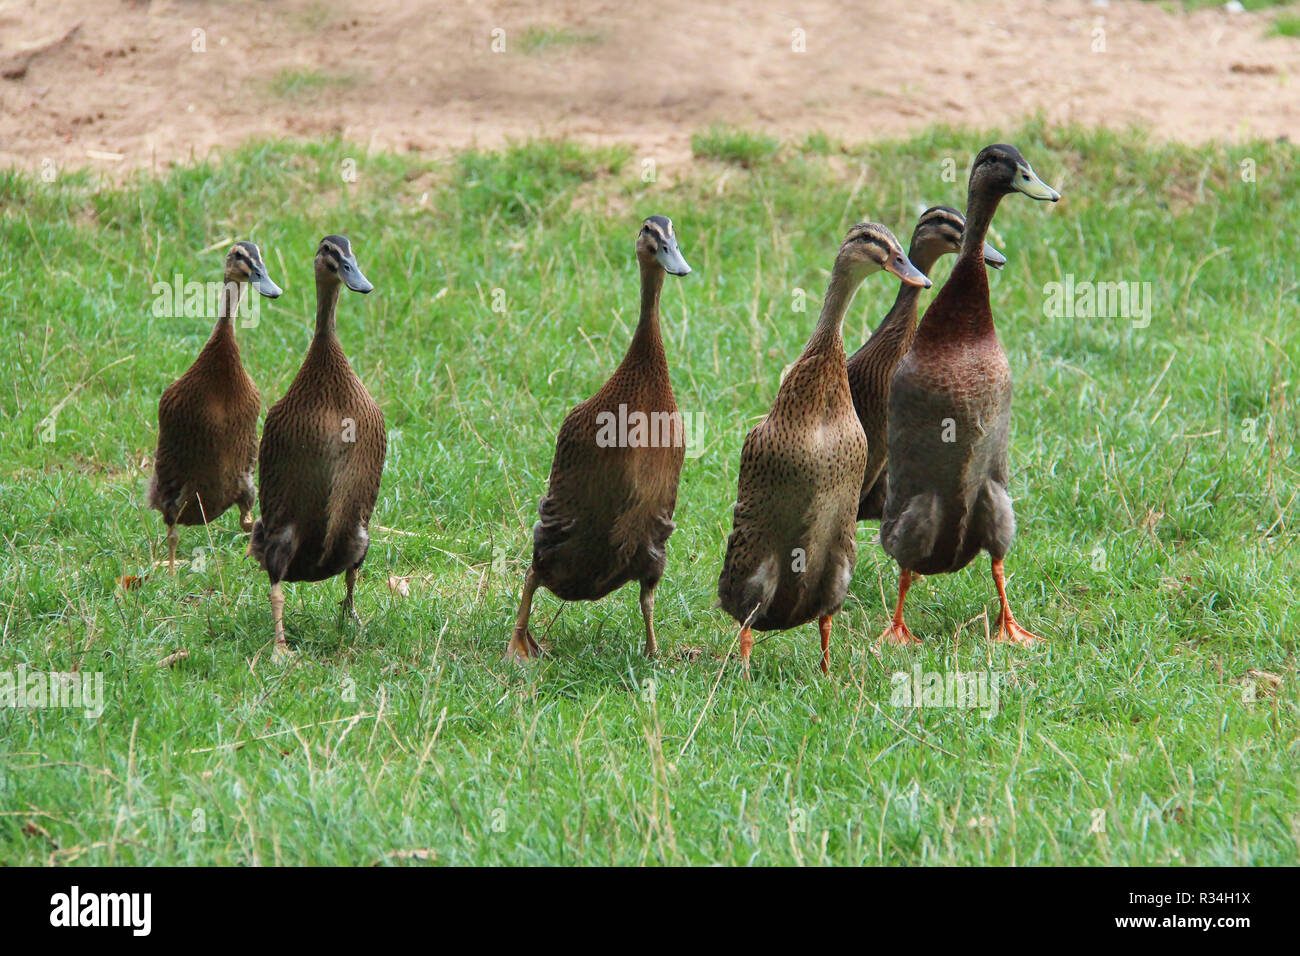 Indian Runners are a breed of Anas platyrhynchos domesticus, the domestic duck - Stock Image